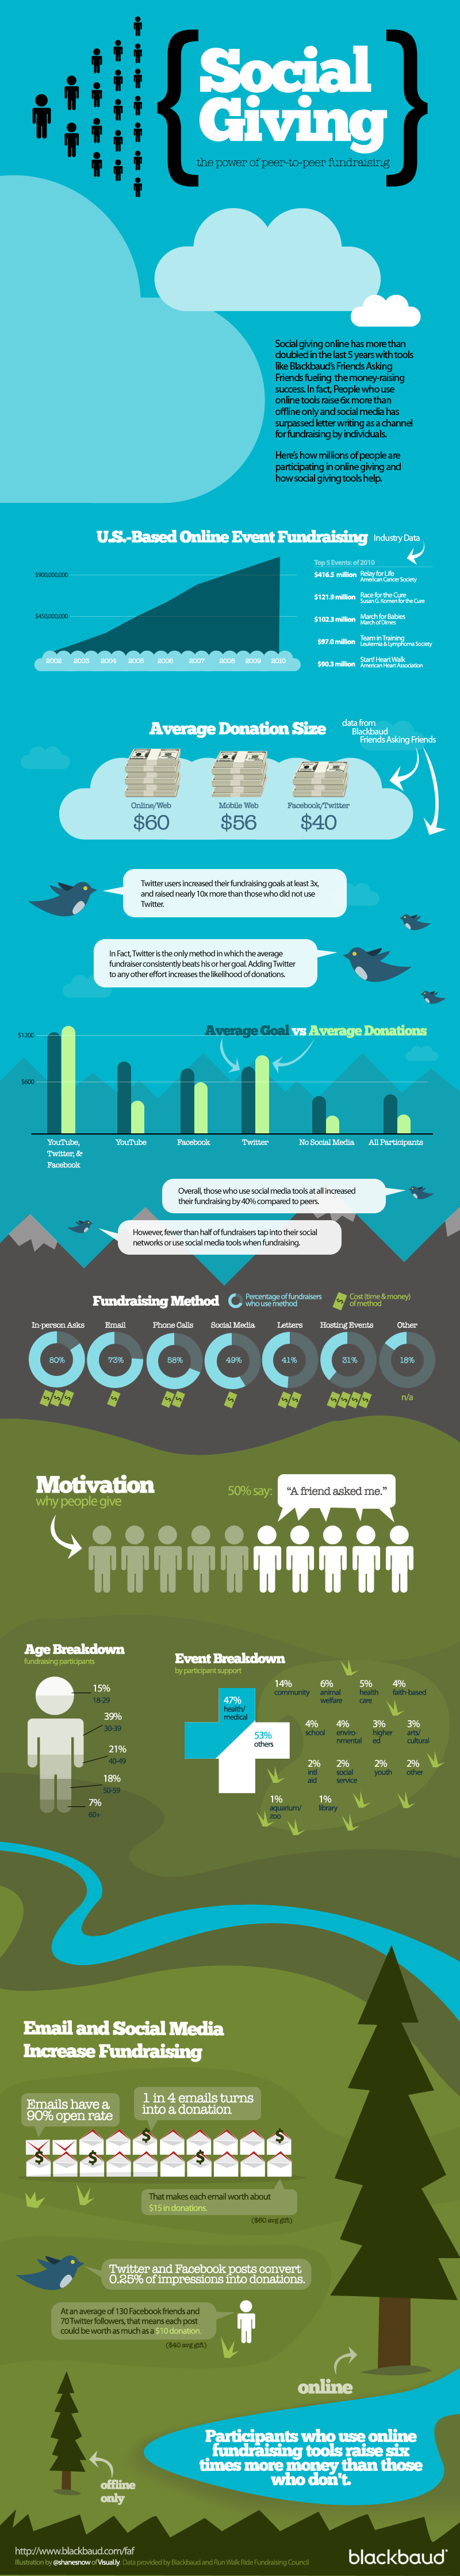 Social Fundraising Statistics and Trends